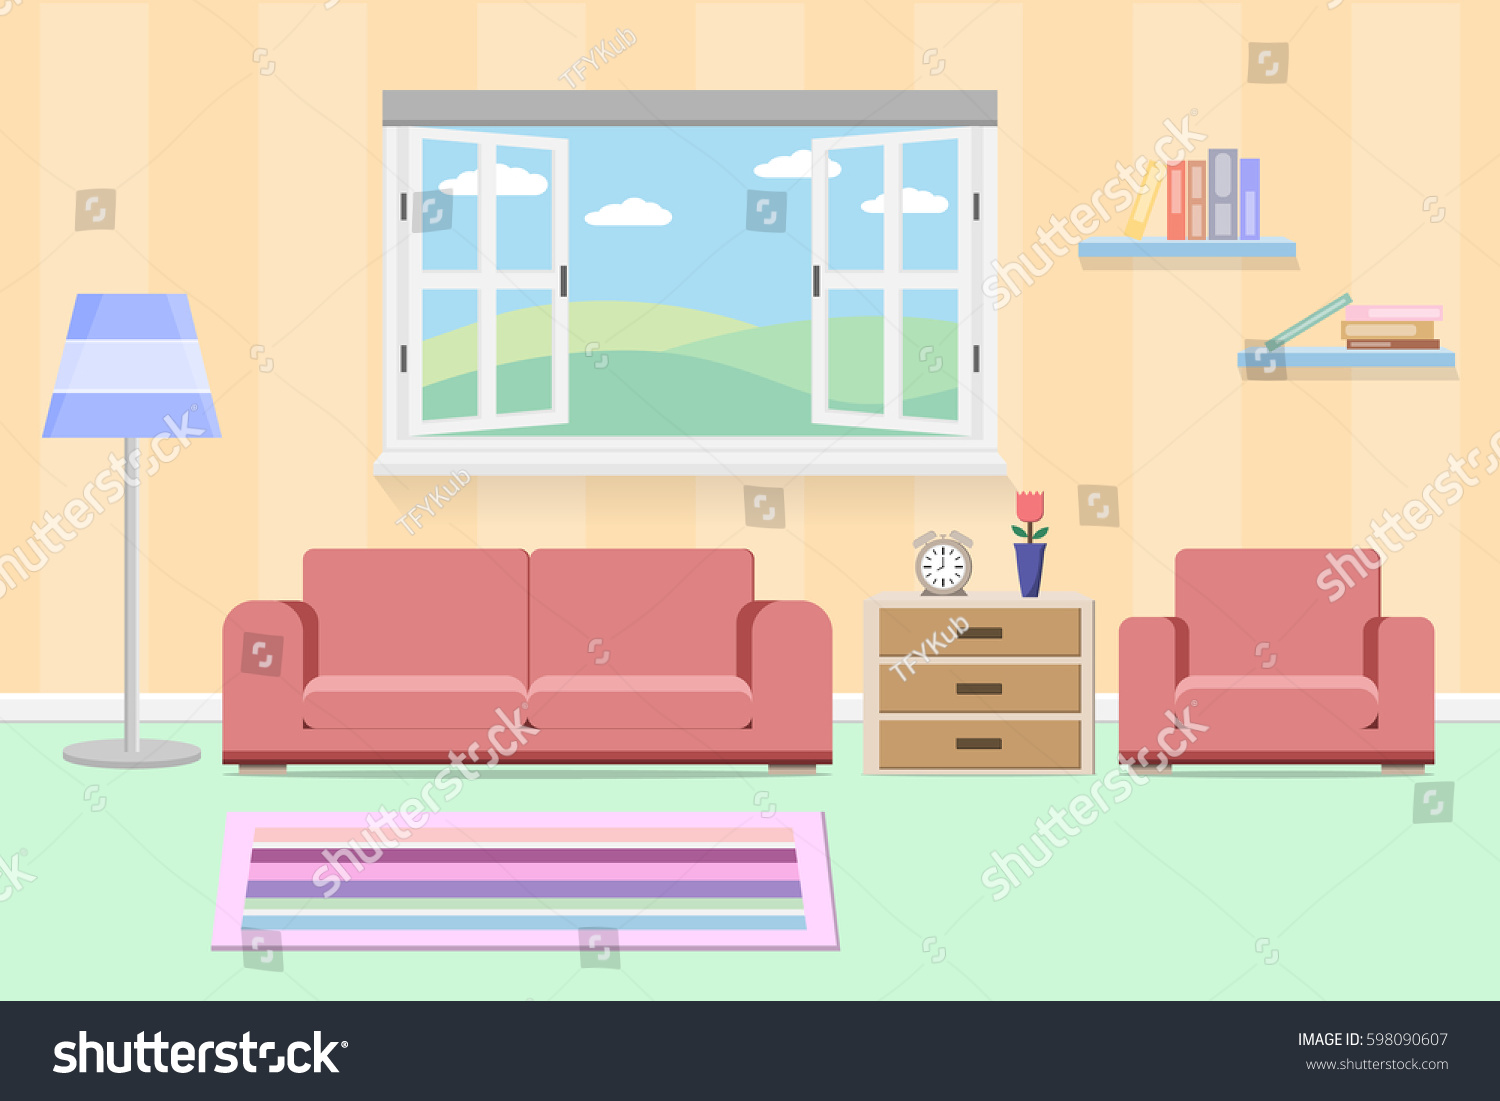 Cartoon kitchen with cabinets and window vector art illustration - Interior Living Design With Window And Furniture Vector And Illustration